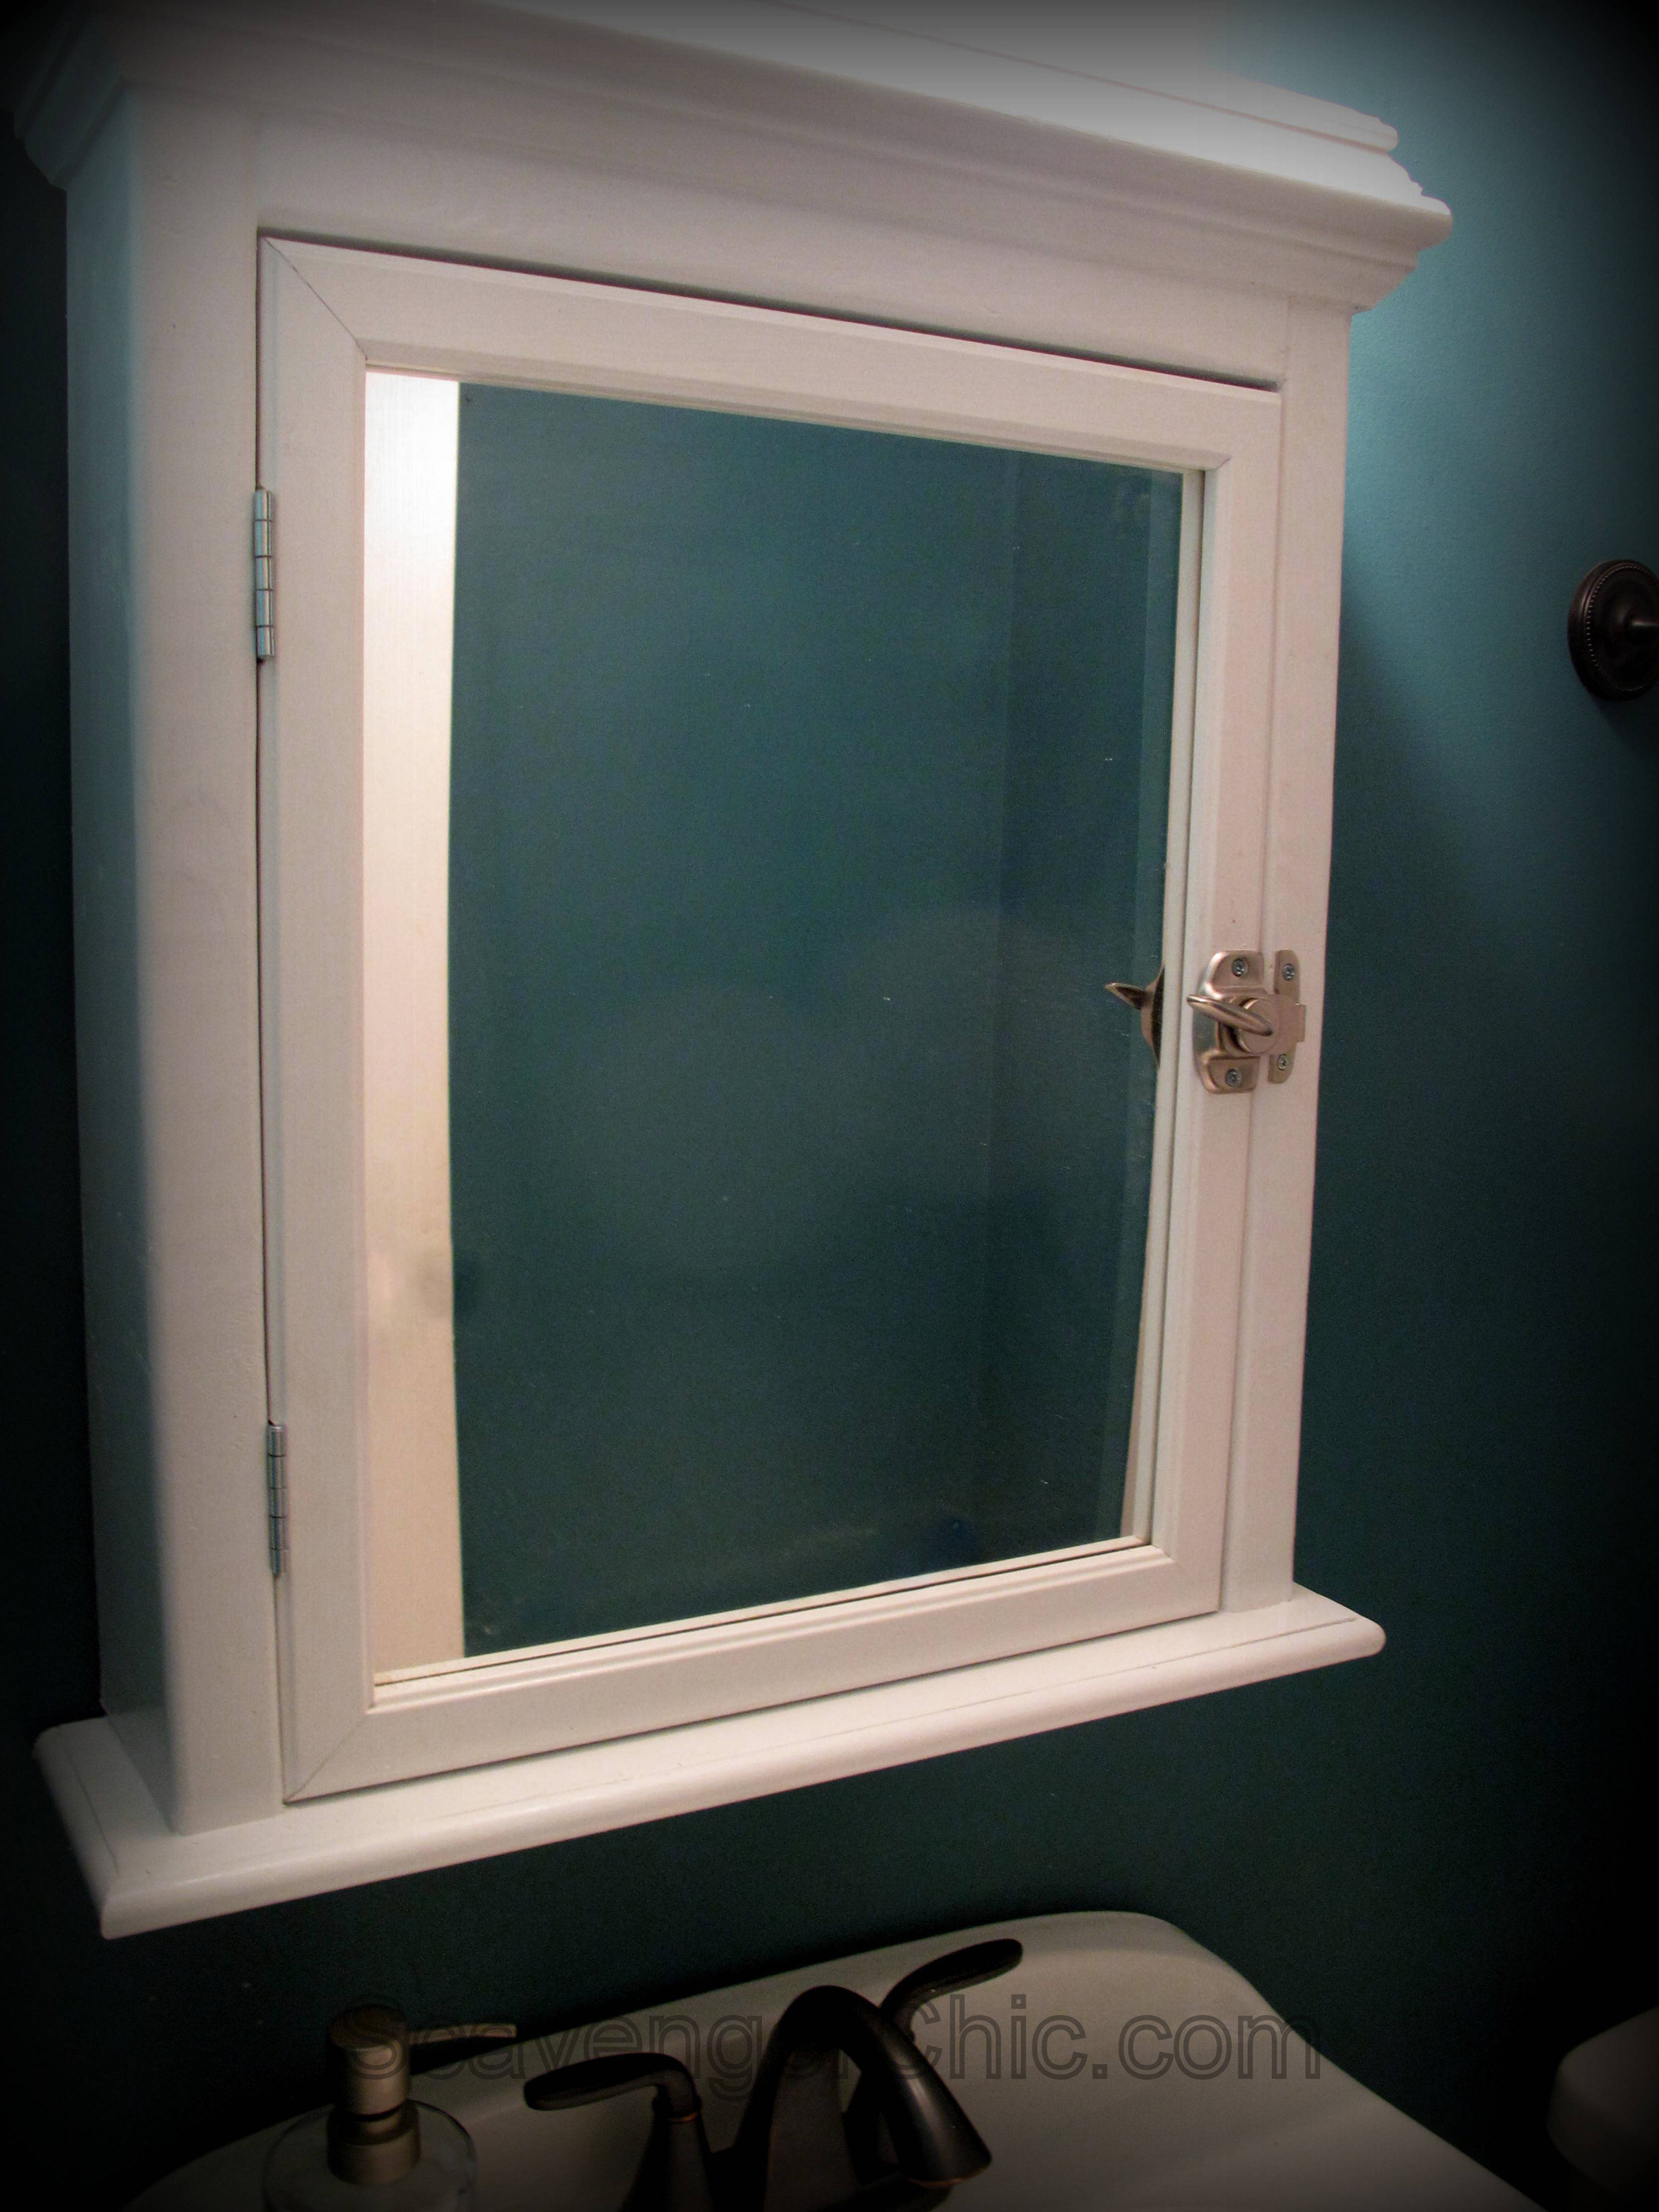 Create a Medicine Cabinet from a Mirror diy - Scavenger Chic